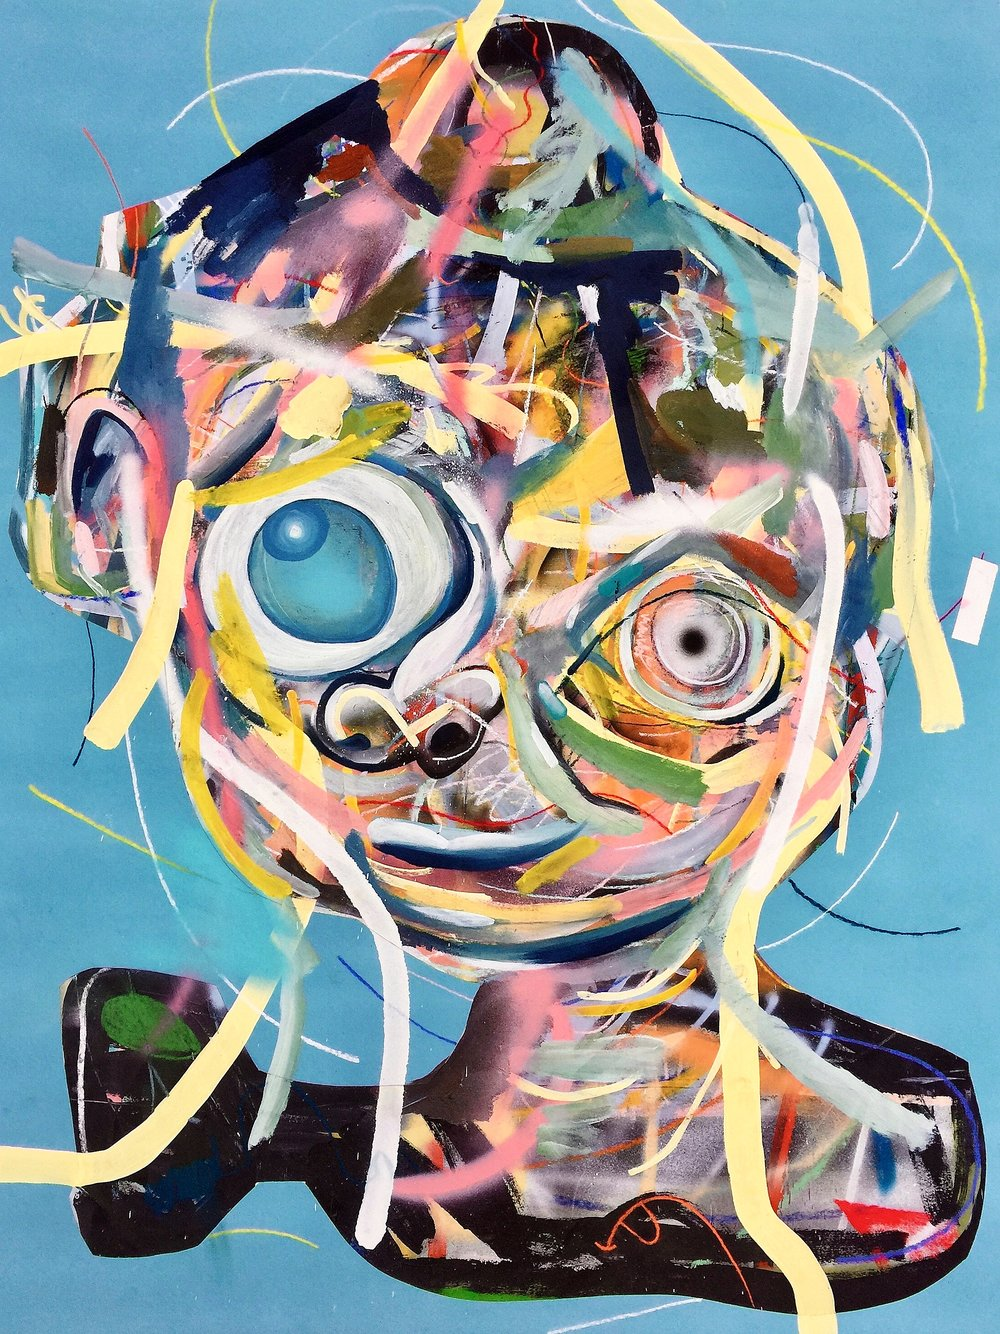 Clayton Brothers    Untitled   (Blue face)  Mixed media on paper  2015  38 x 50 In  $9,000.00